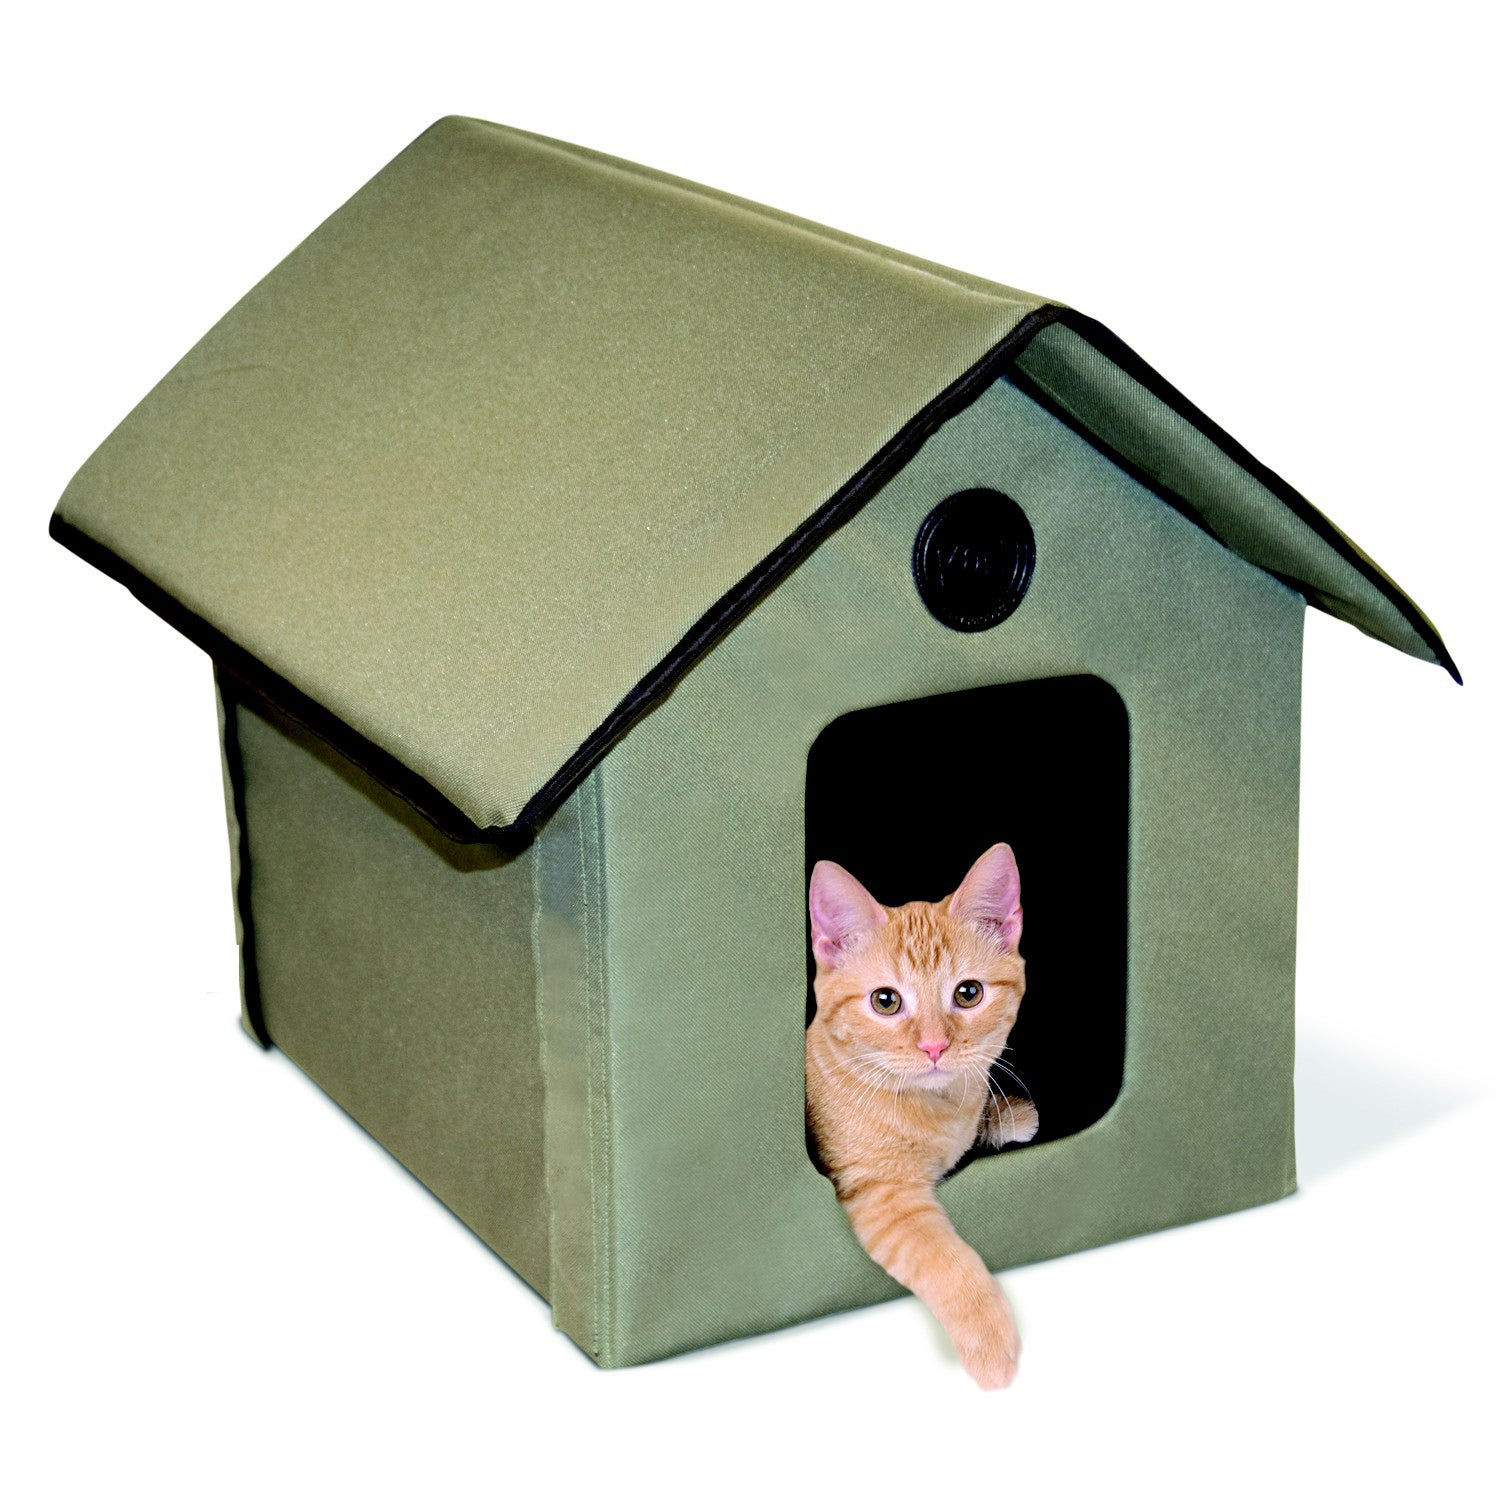 K&H Manufacturing K&H Outdoor Non-Heated Kitty House (Gre...